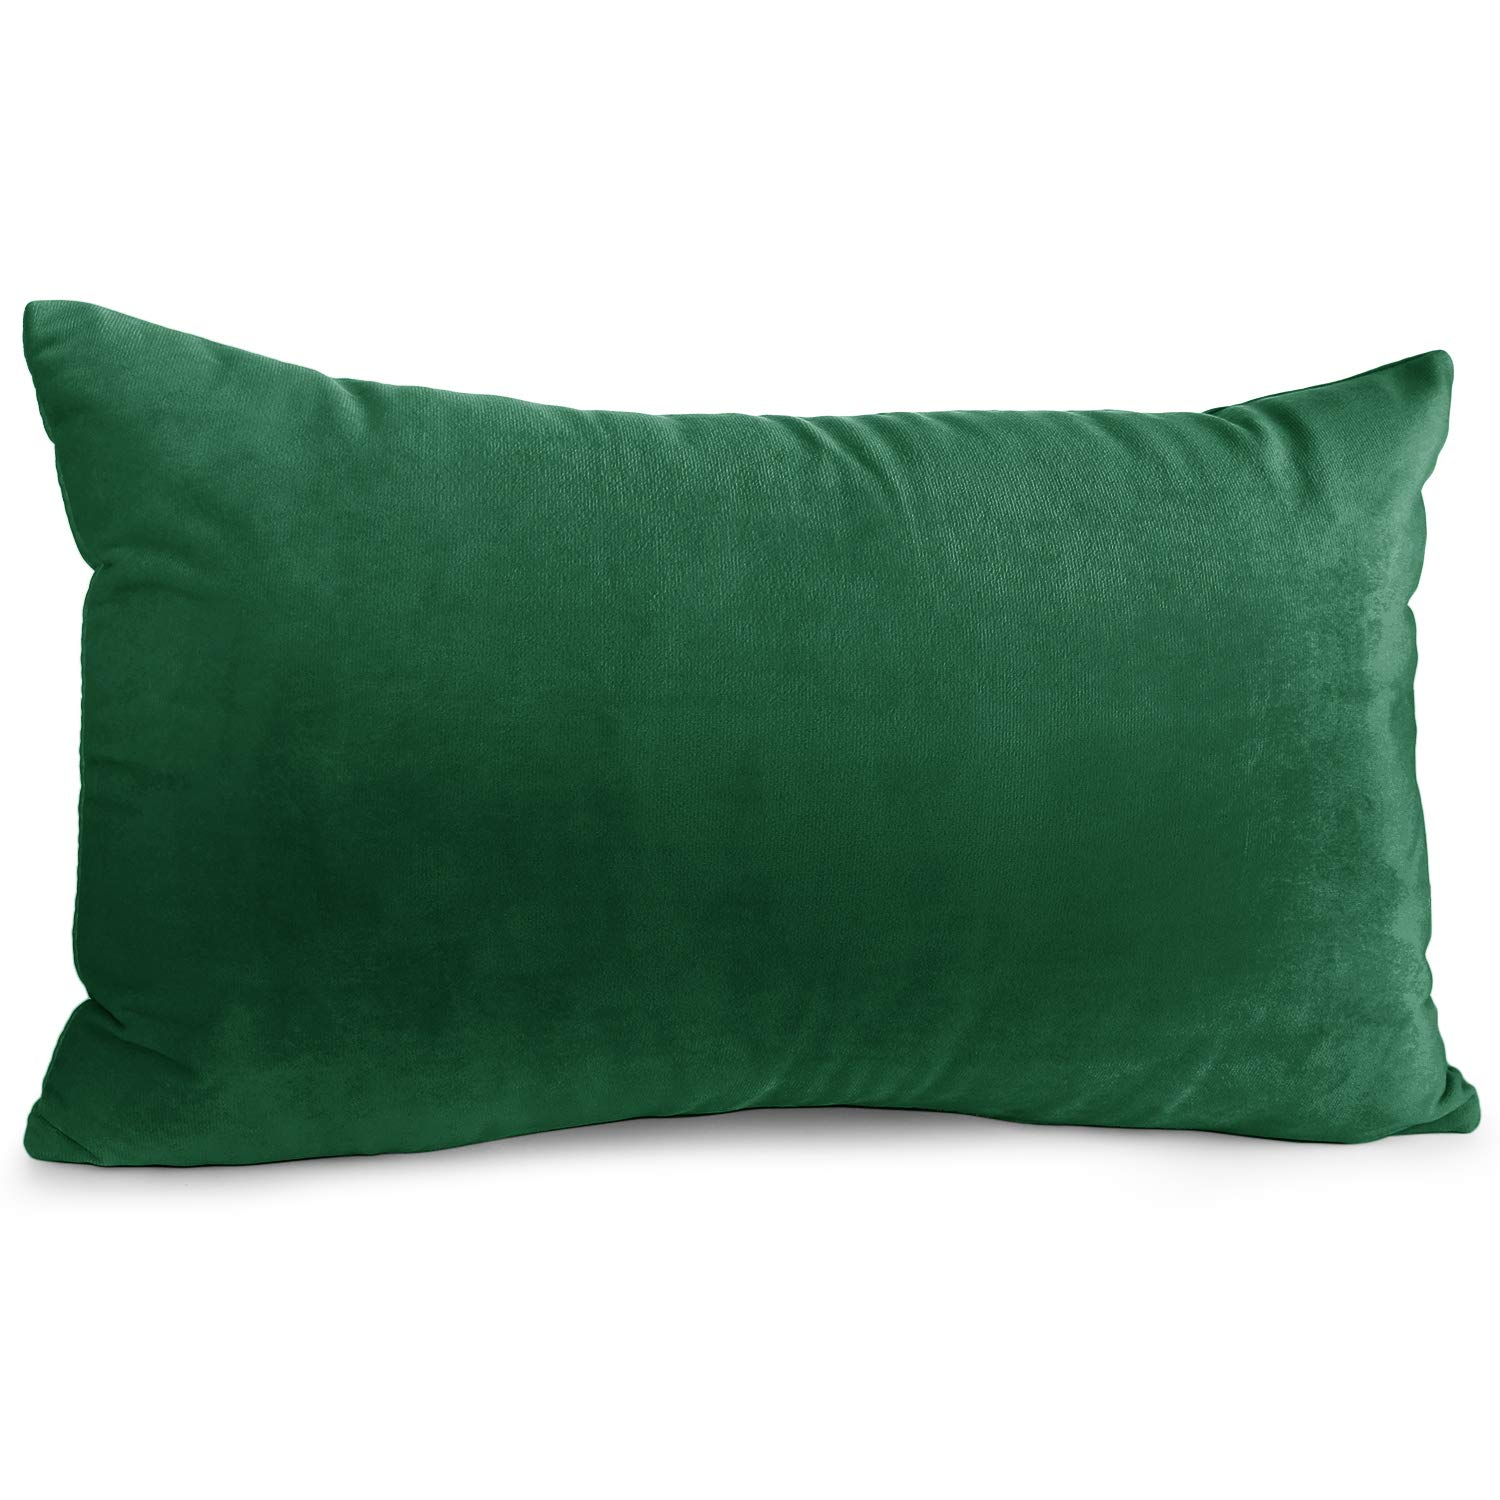 """Nestl Bedding Throw Pillow Cover 12"""" x 20"""" Soft Square Decorative Throw Pillow Covers Cozy Velvet Cushion Case for Sofa Couch Bedroom - Hunter Green"""